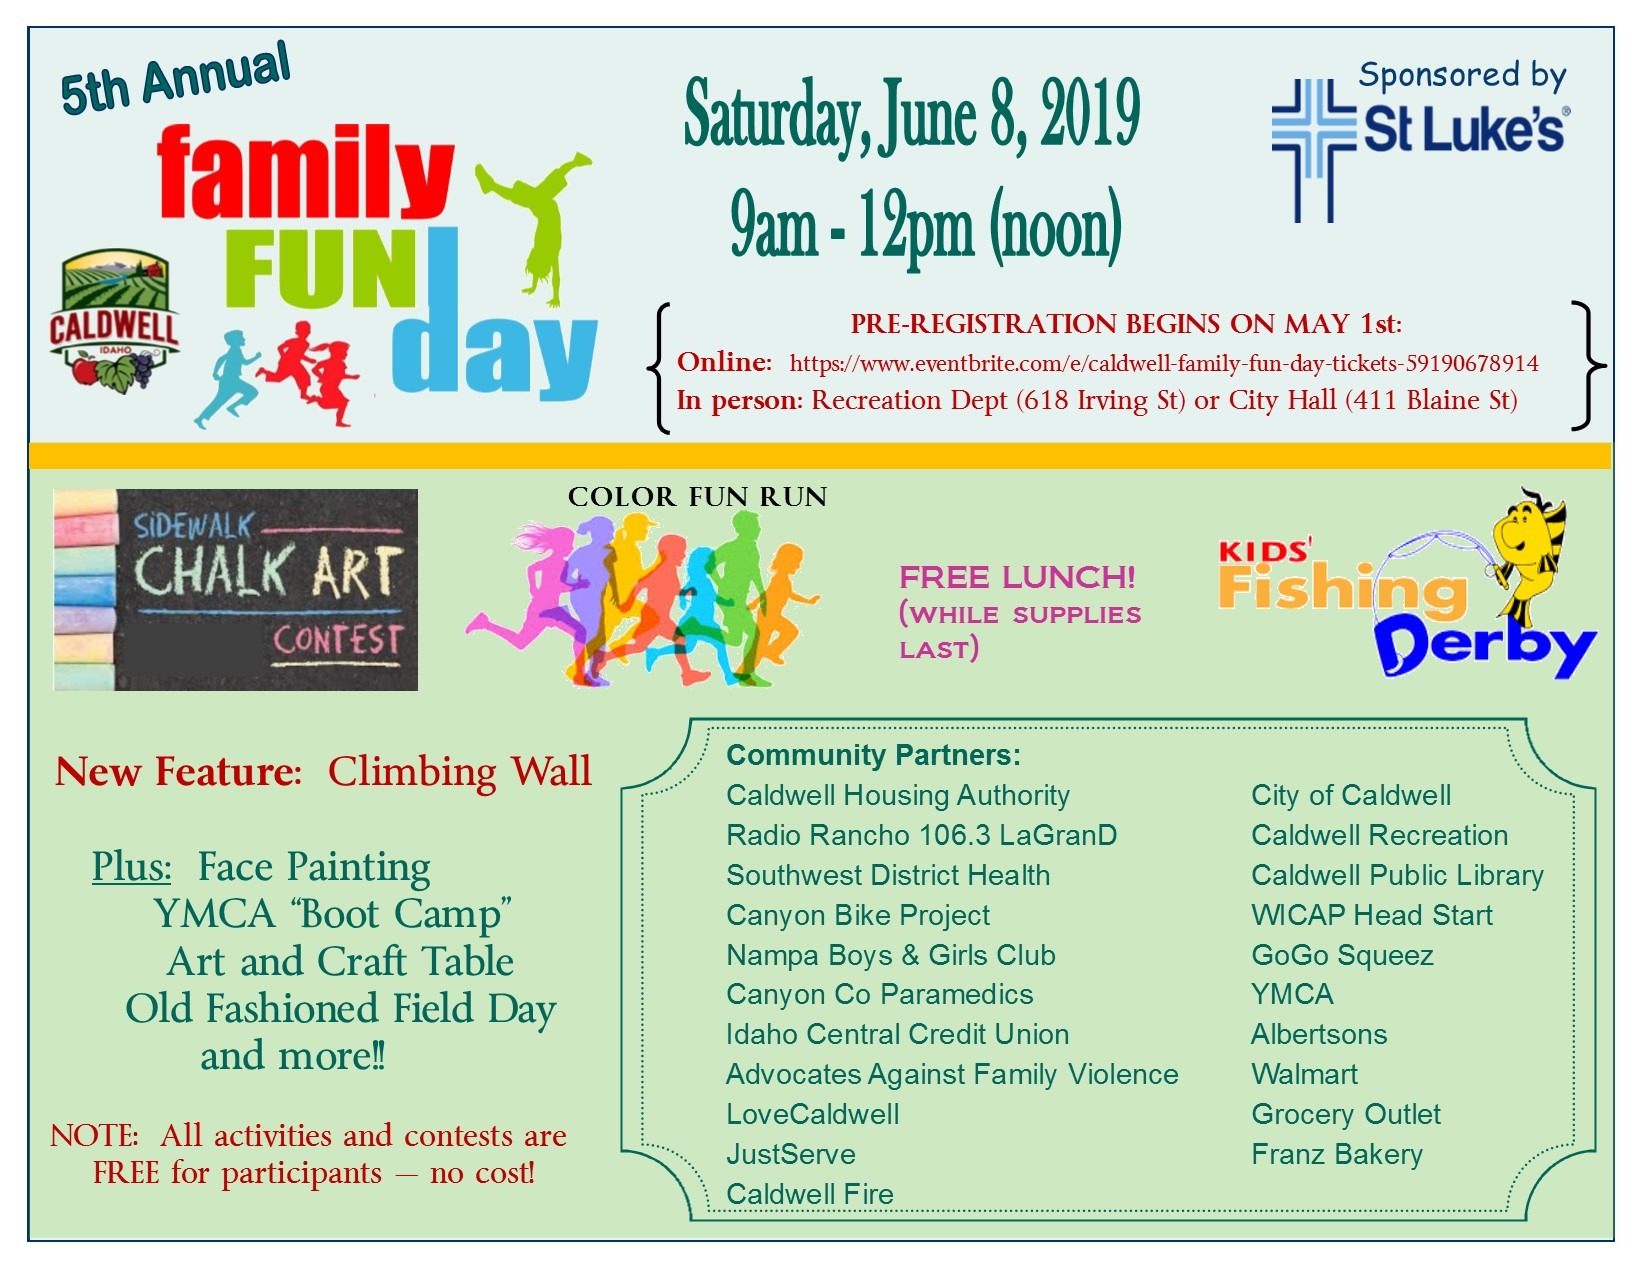 2019 Family fun day flyer - June 8, 2019 event